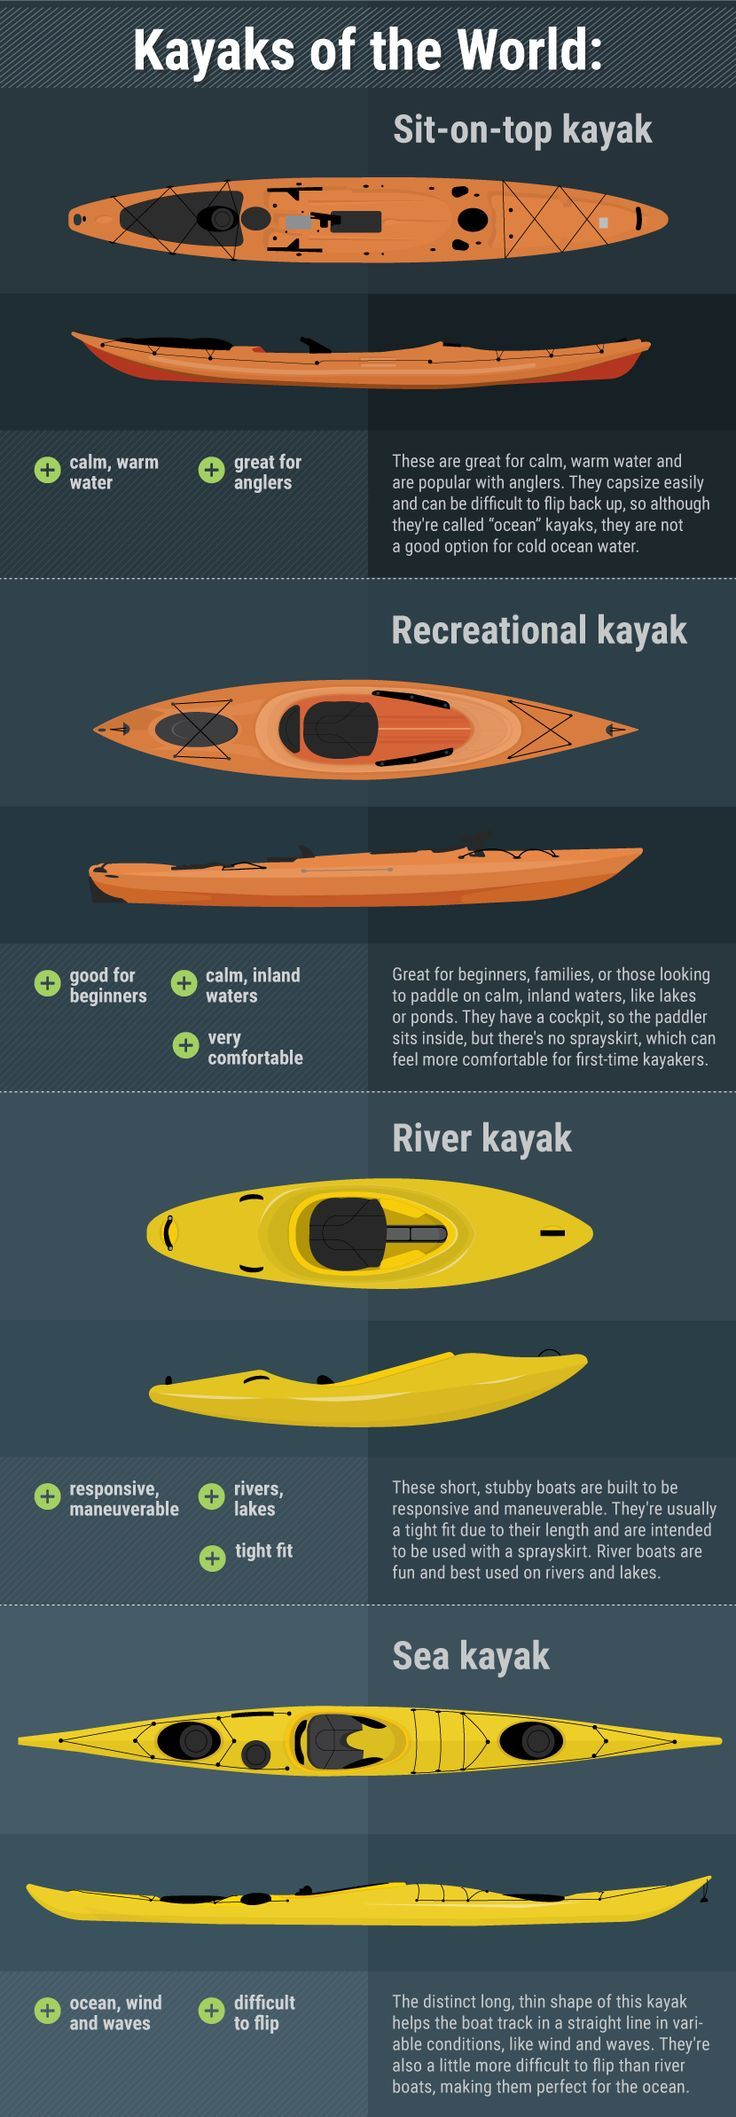 e53721c88394699820606408ecf75a13 kayak camping kayak fishing 648 best kayaks images on pinterest fishing stuff, kayak fishing  at aneh.co